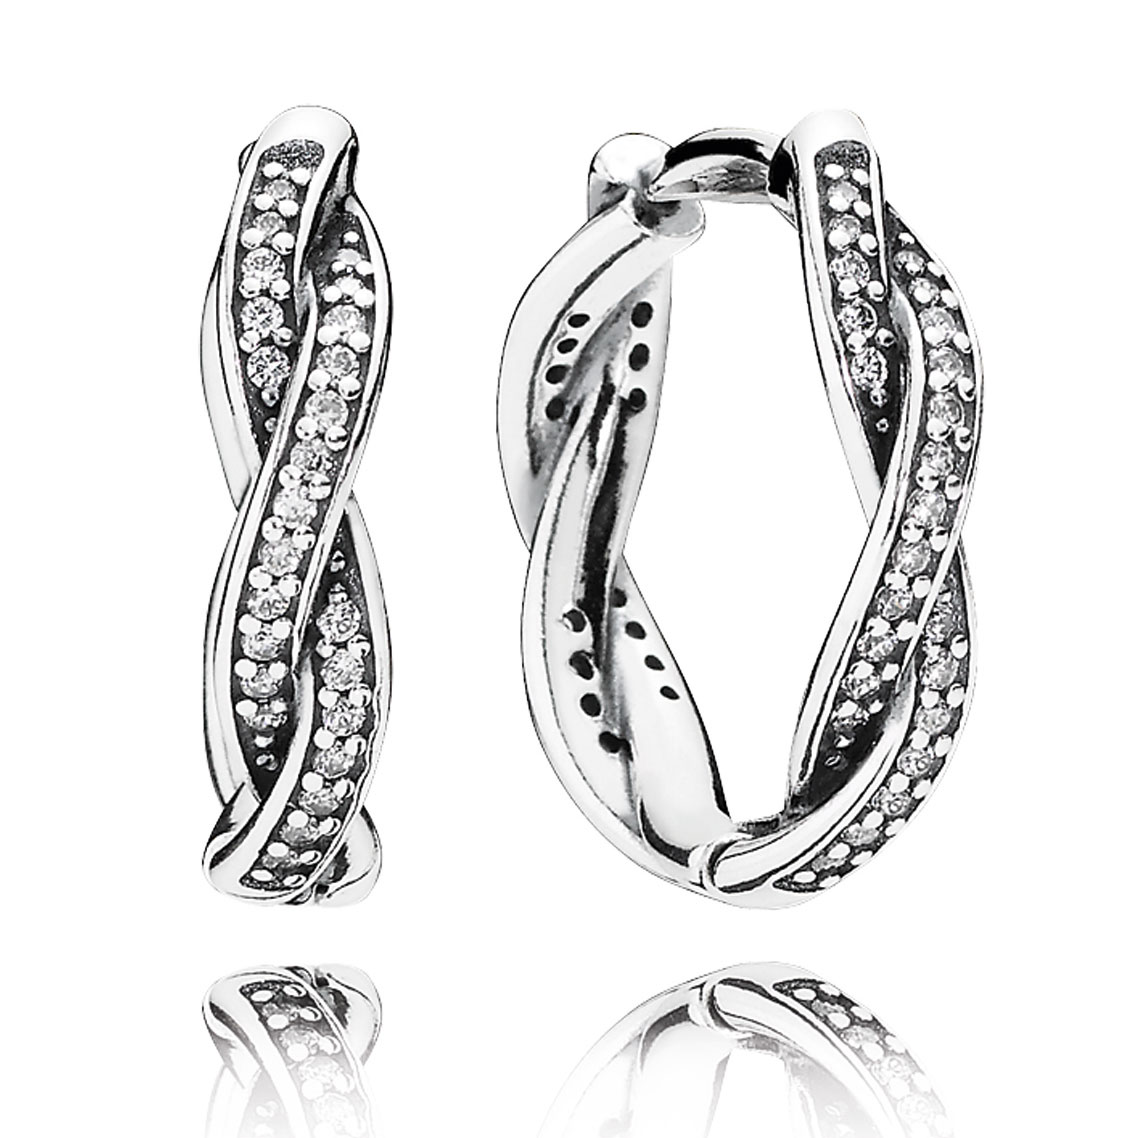 804-392-PANDORA Twist of Fate with Clear CZ Hoop Earrings